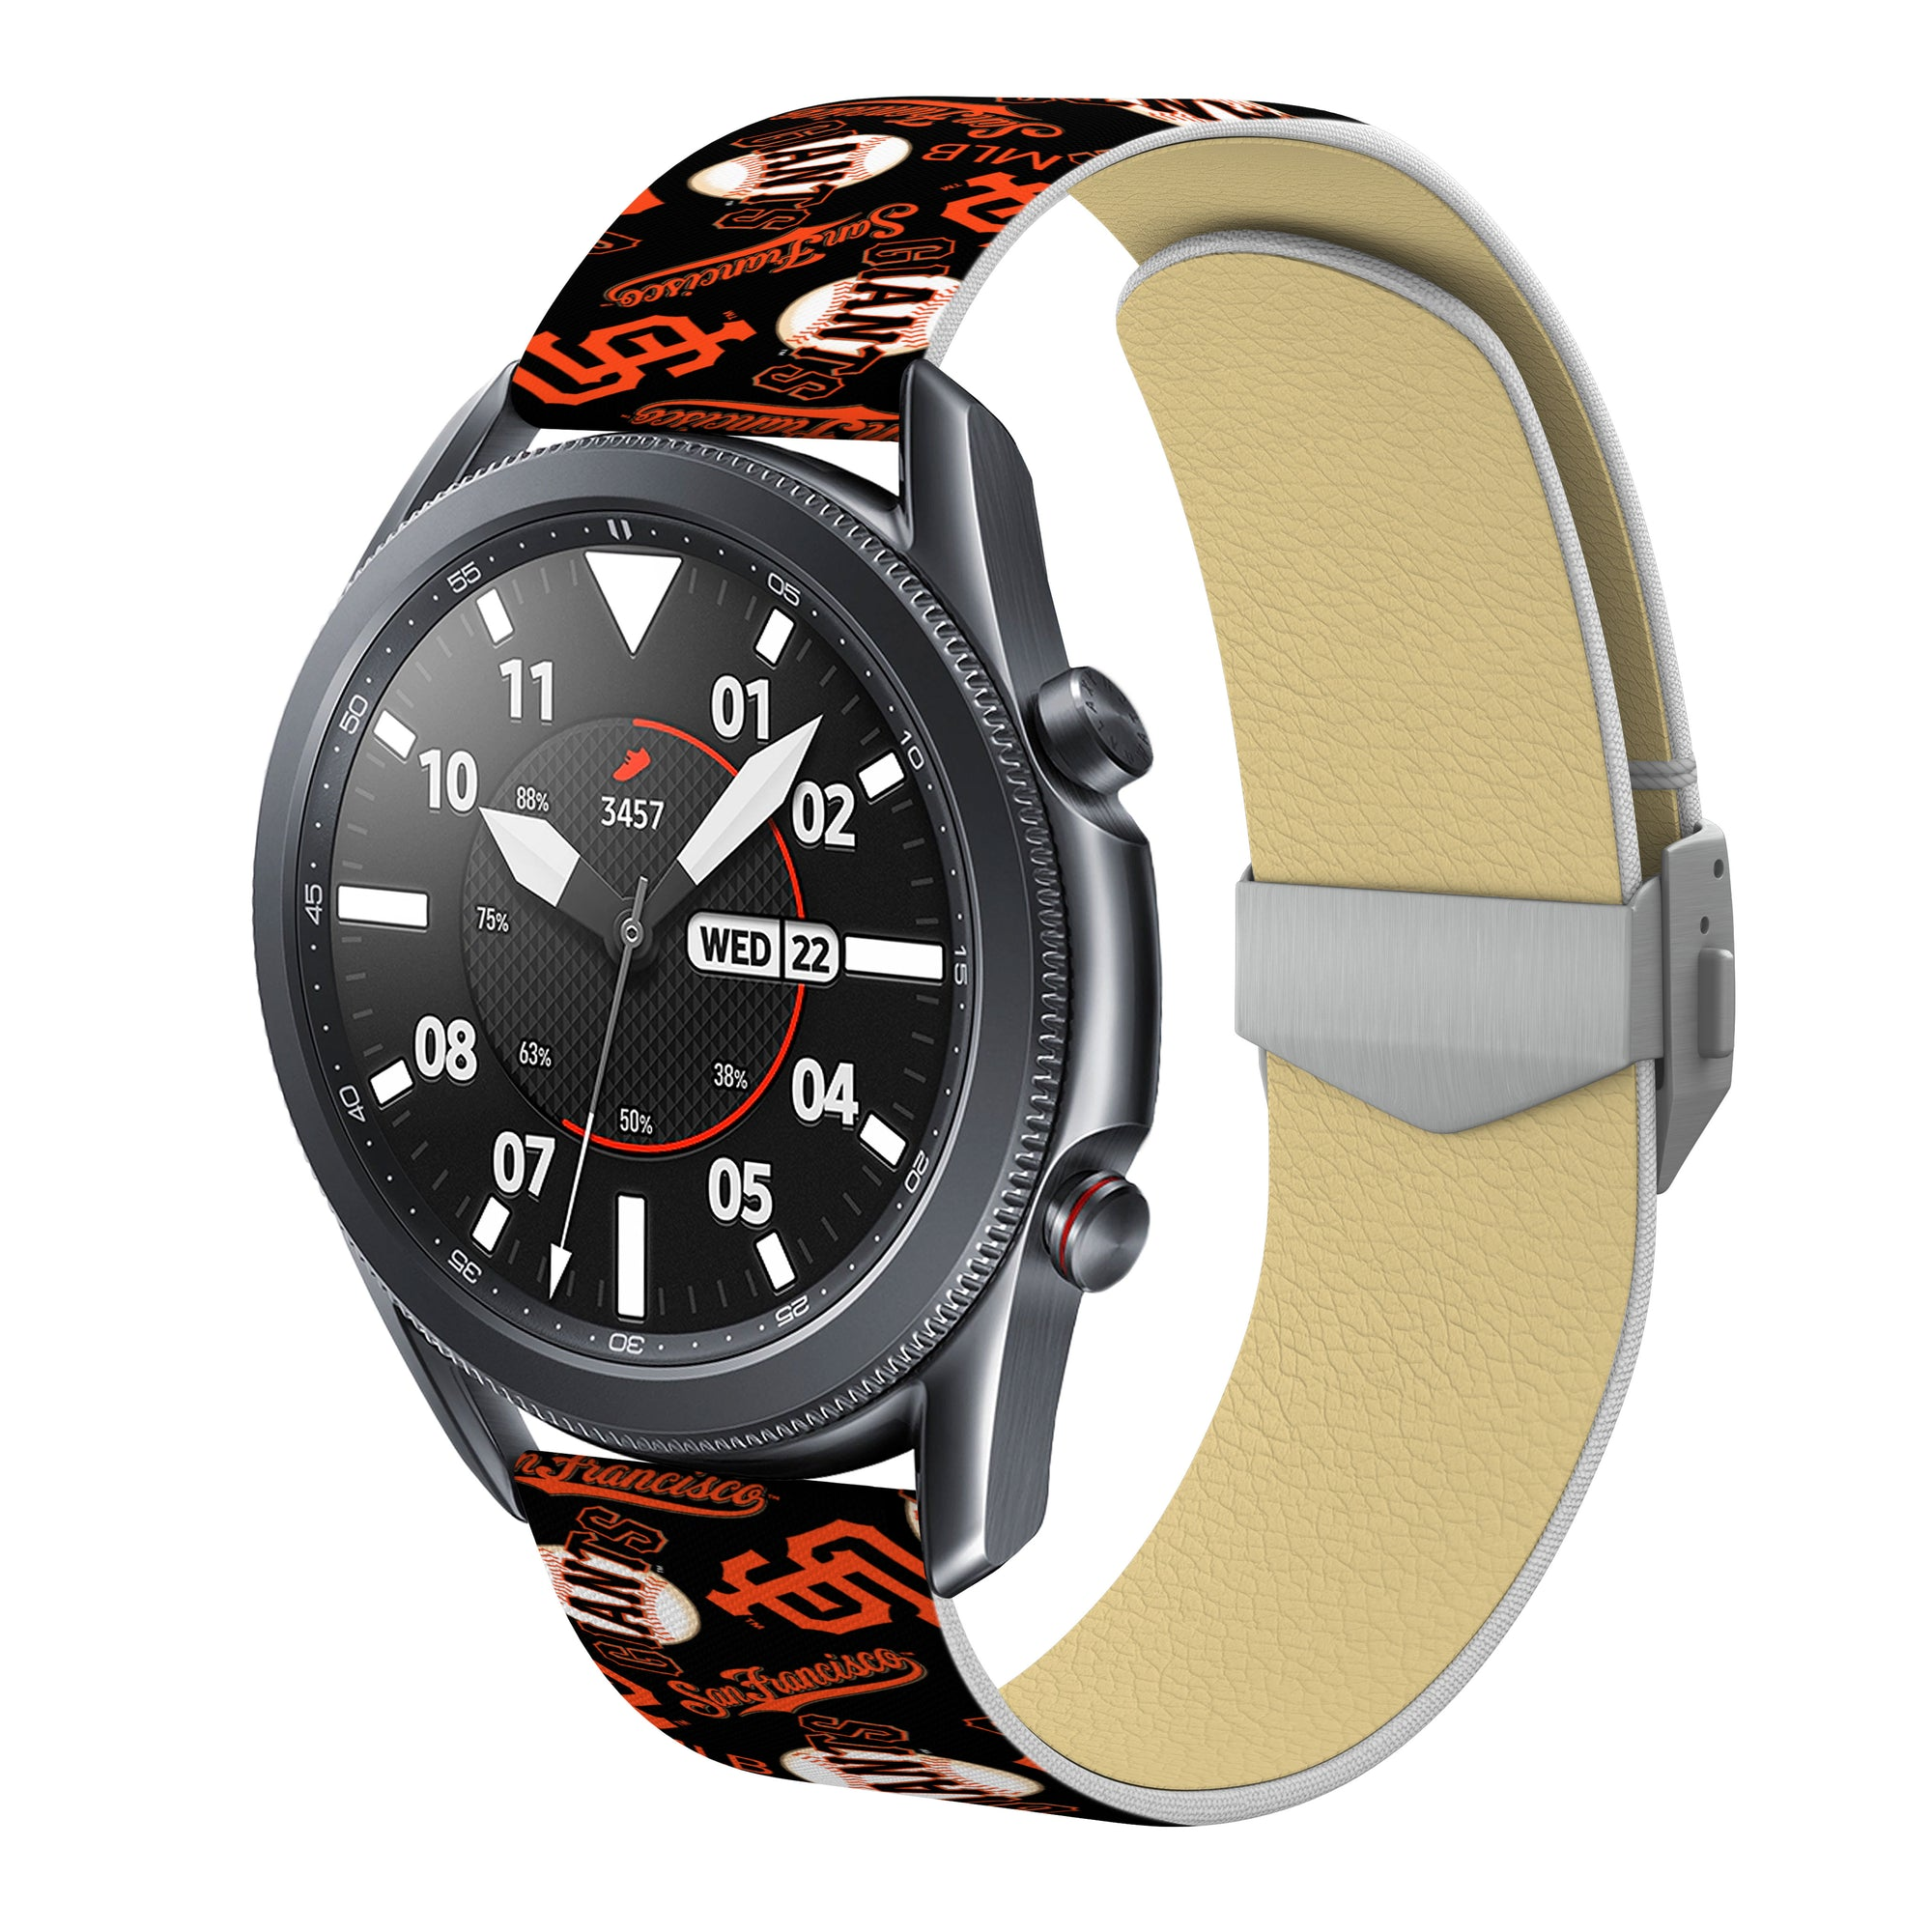 San Francisco Giants Full Print Quick Change Watch Band With Engraved Buckle - AffinityBands